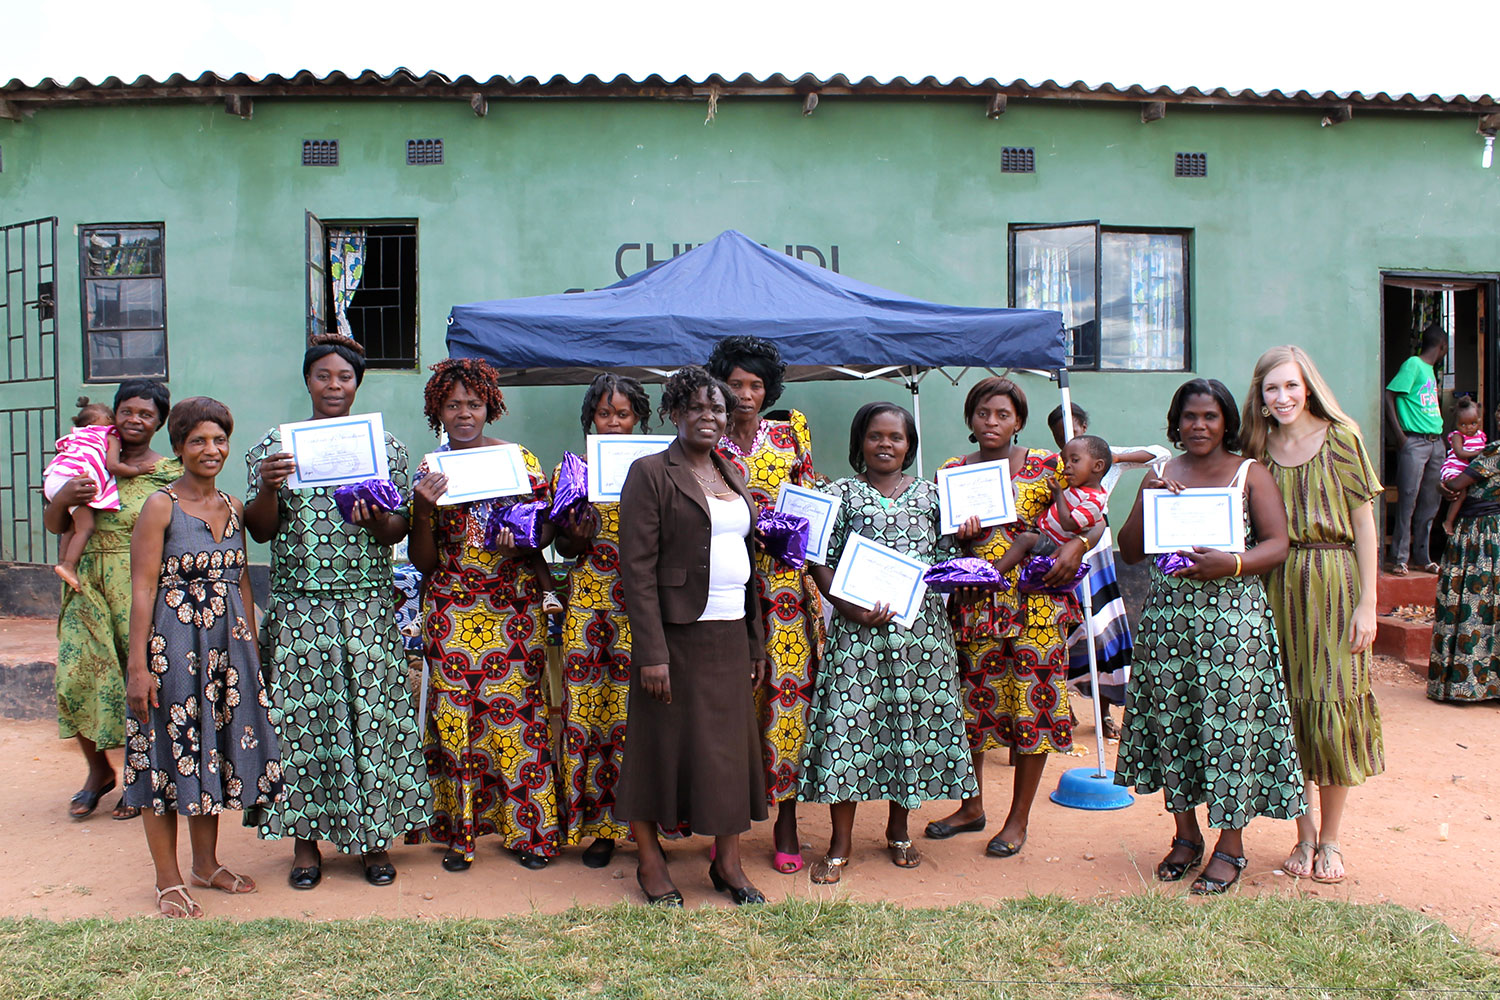 CiH Staff with the Class of March 2015 Graduates. Congratulations, ladies!!